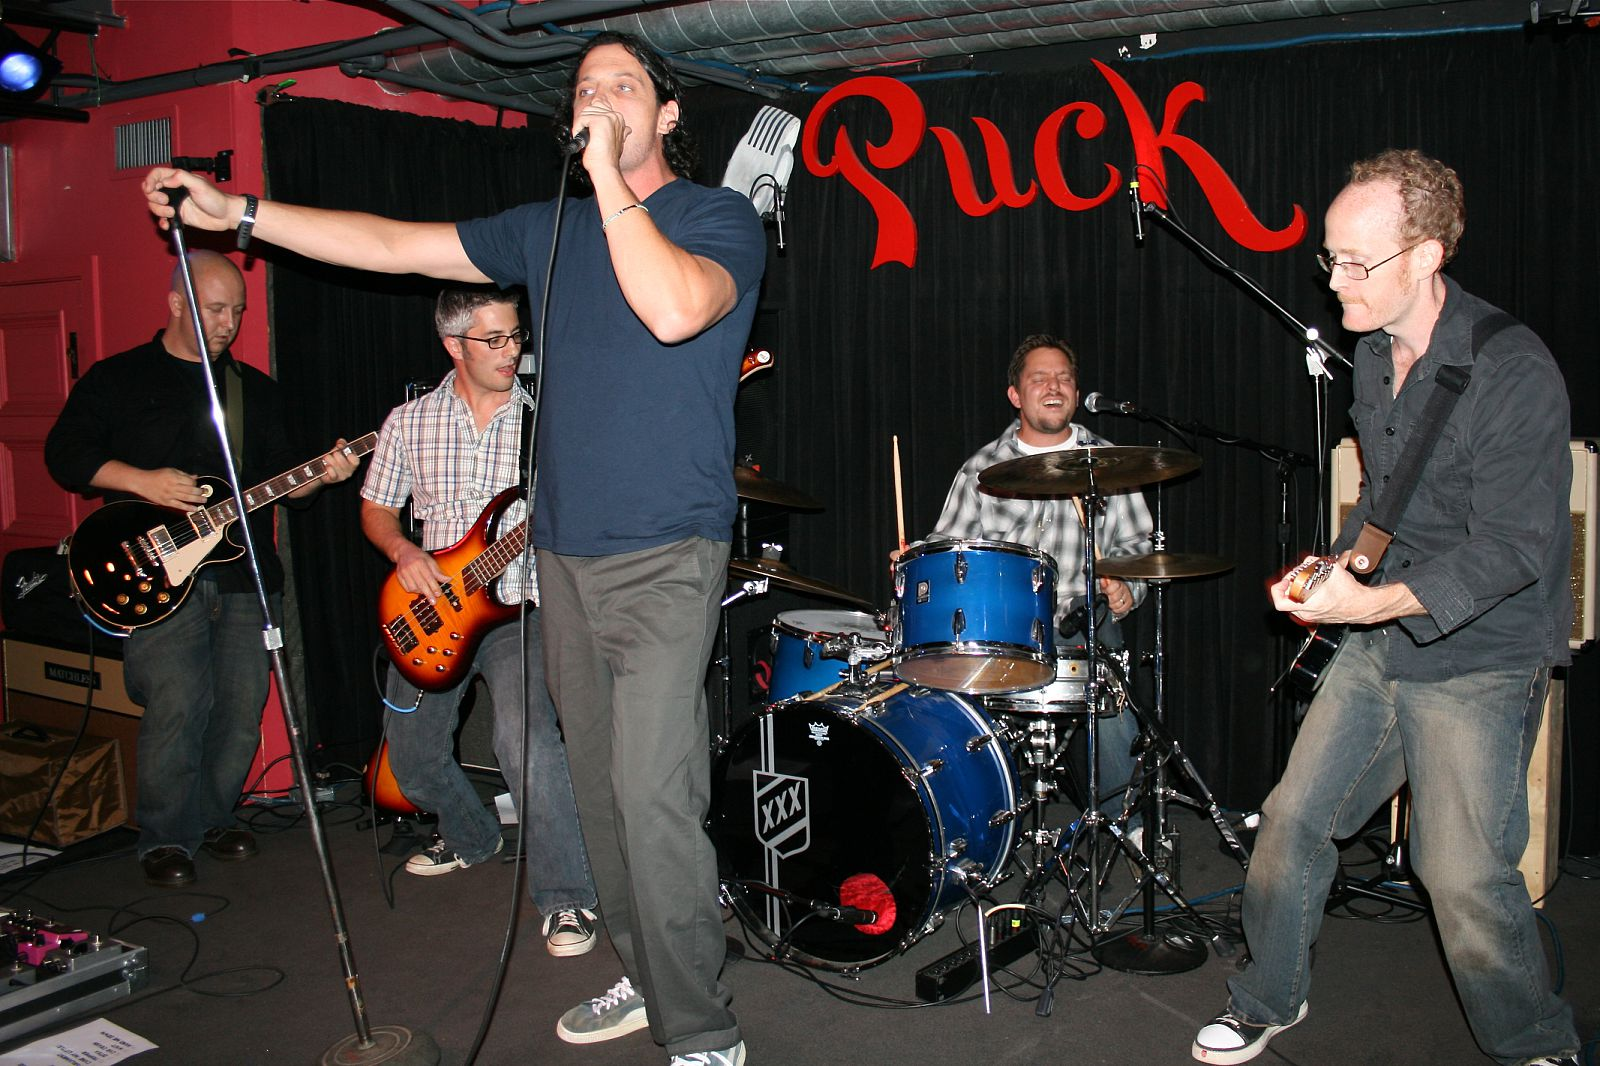 Performing with Winston's Dog at Puck in 2009